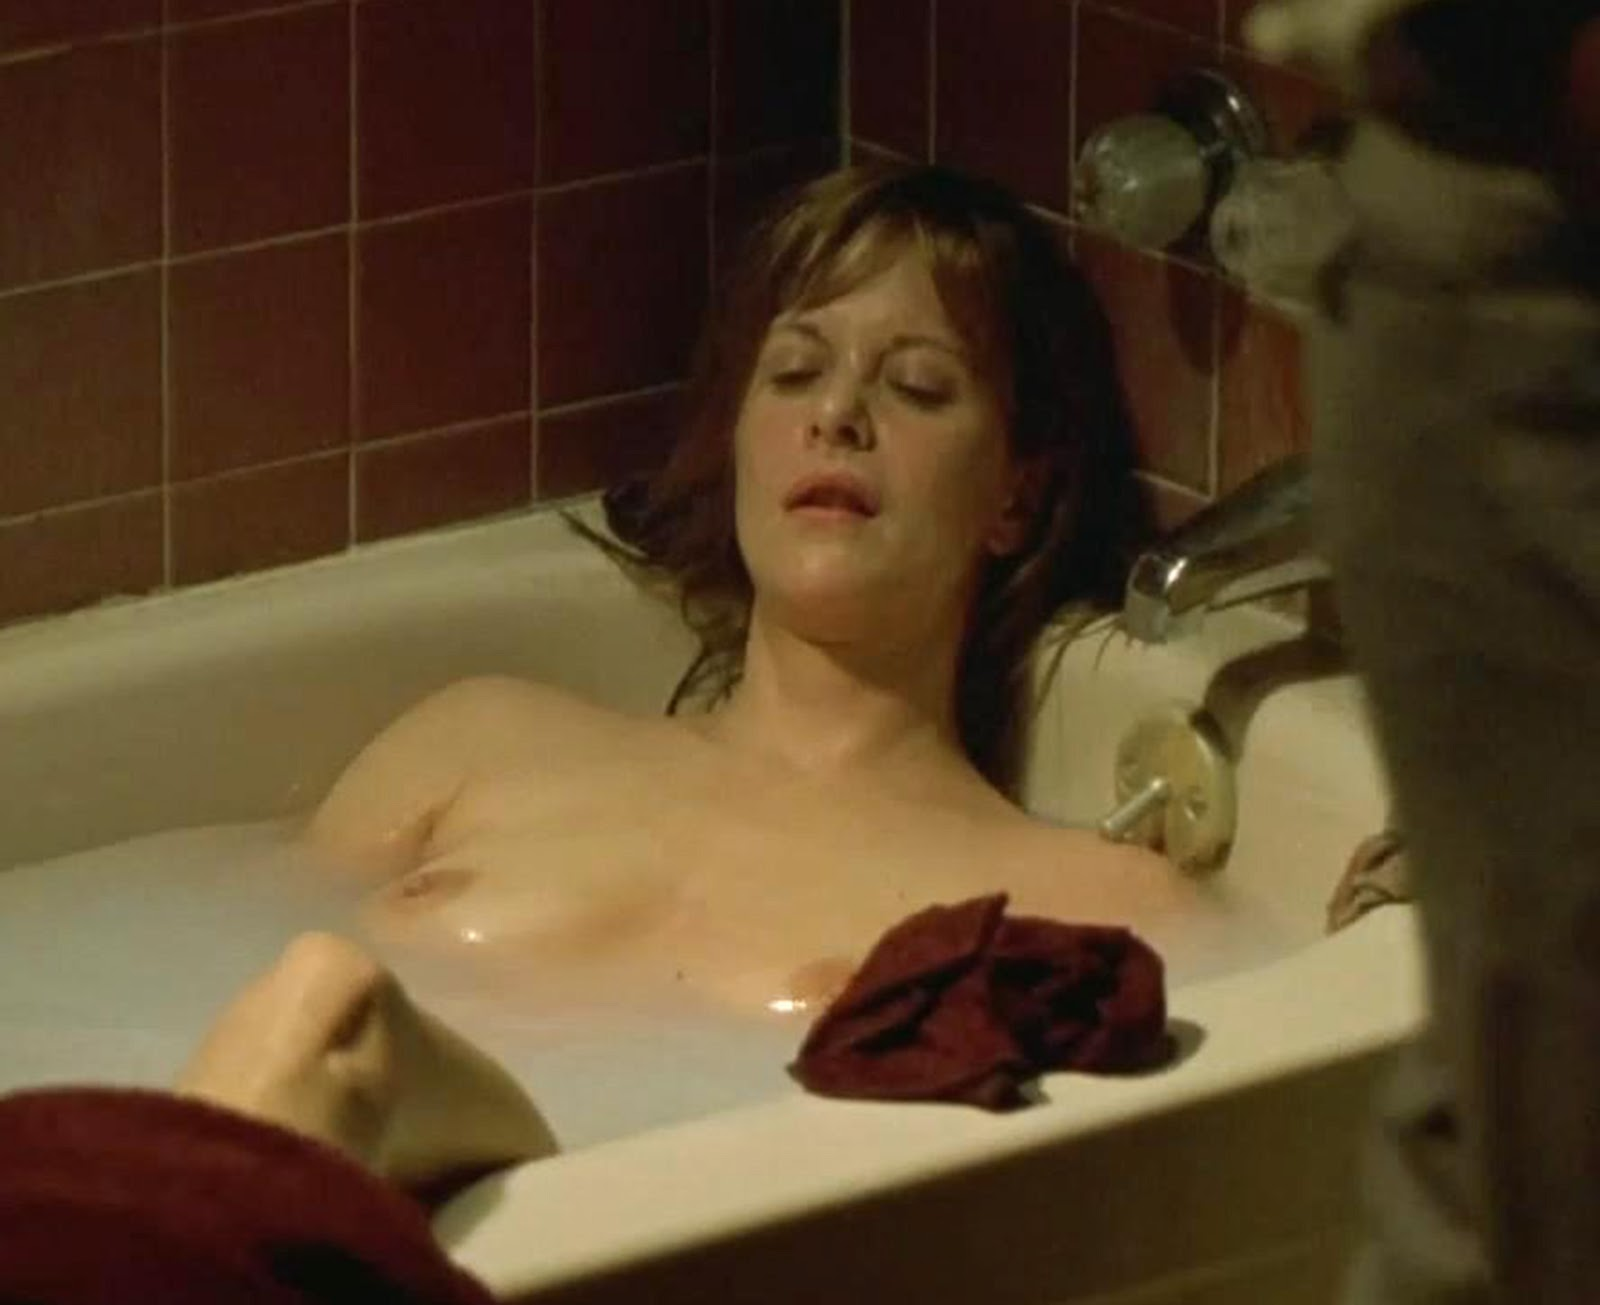 Meg ryan nude boobs and fucking in the cut movie 5